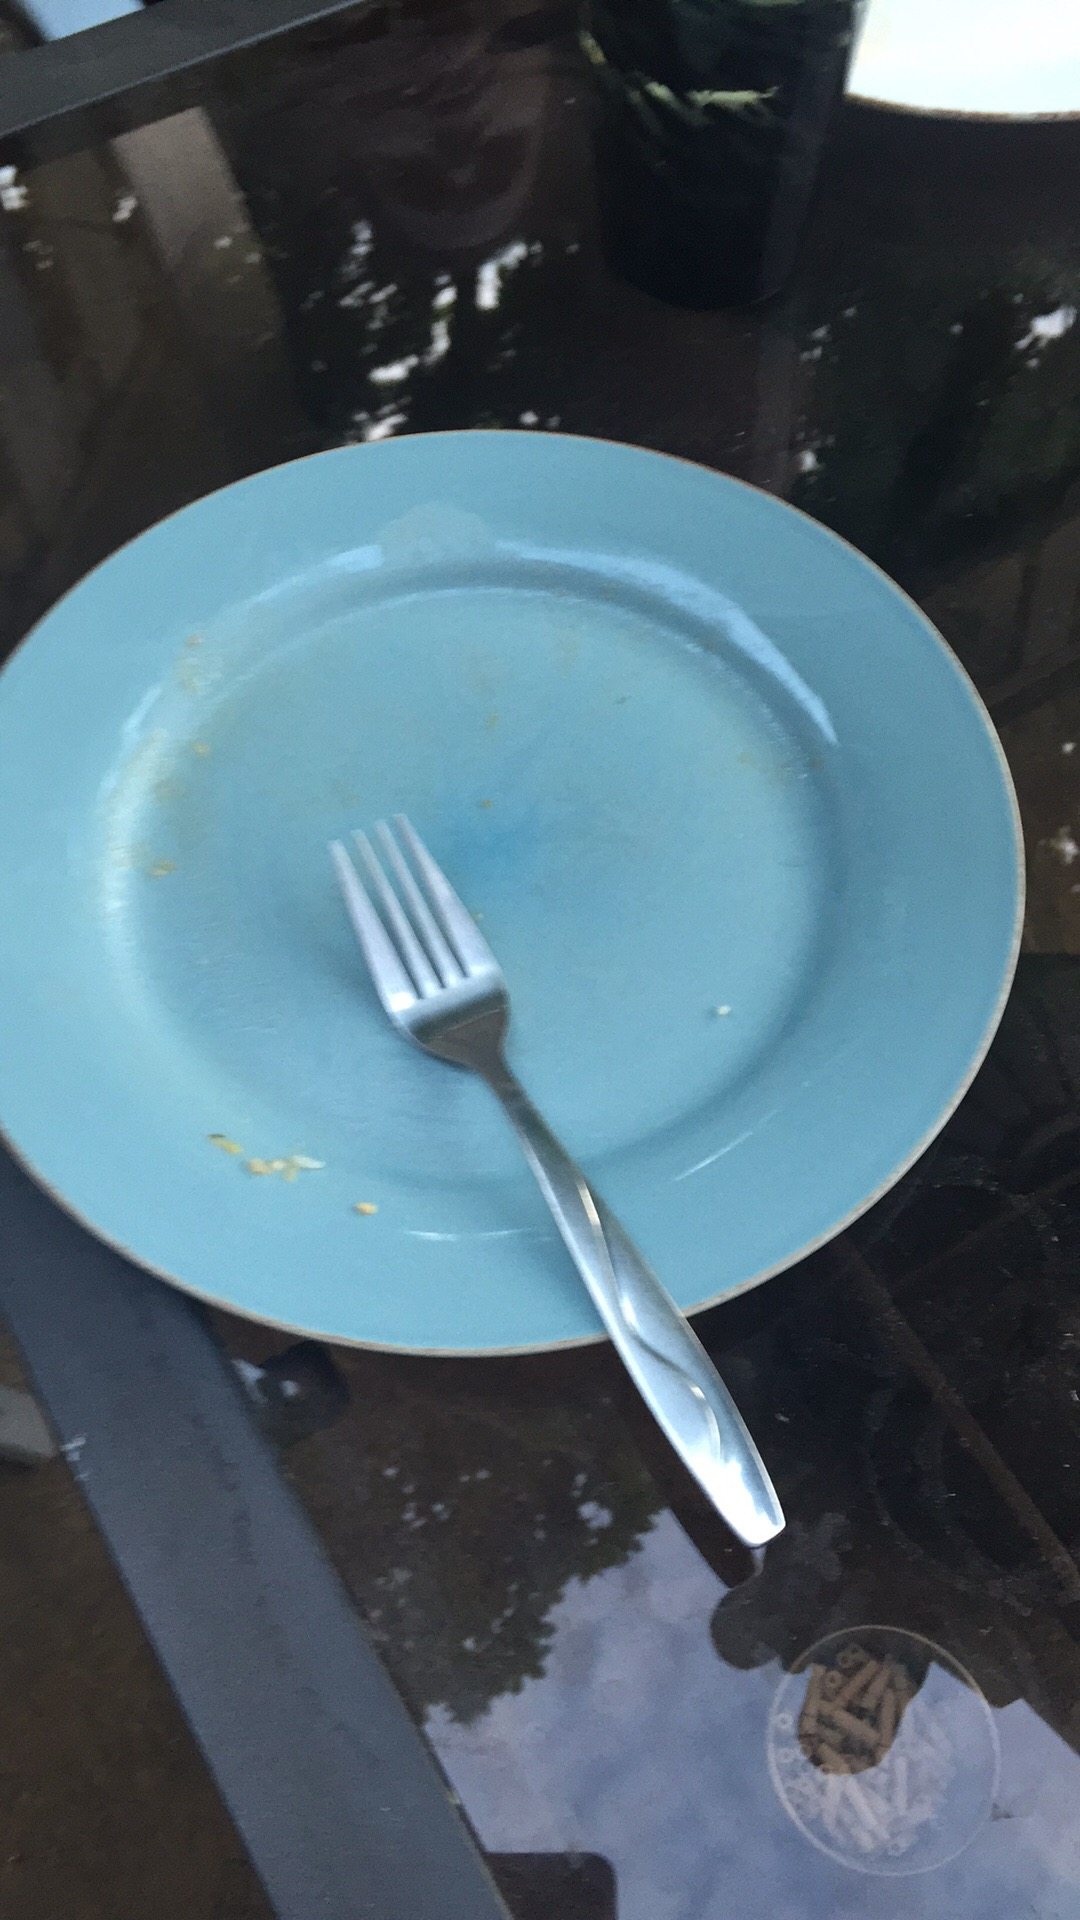 The aftermath of this delicious meal